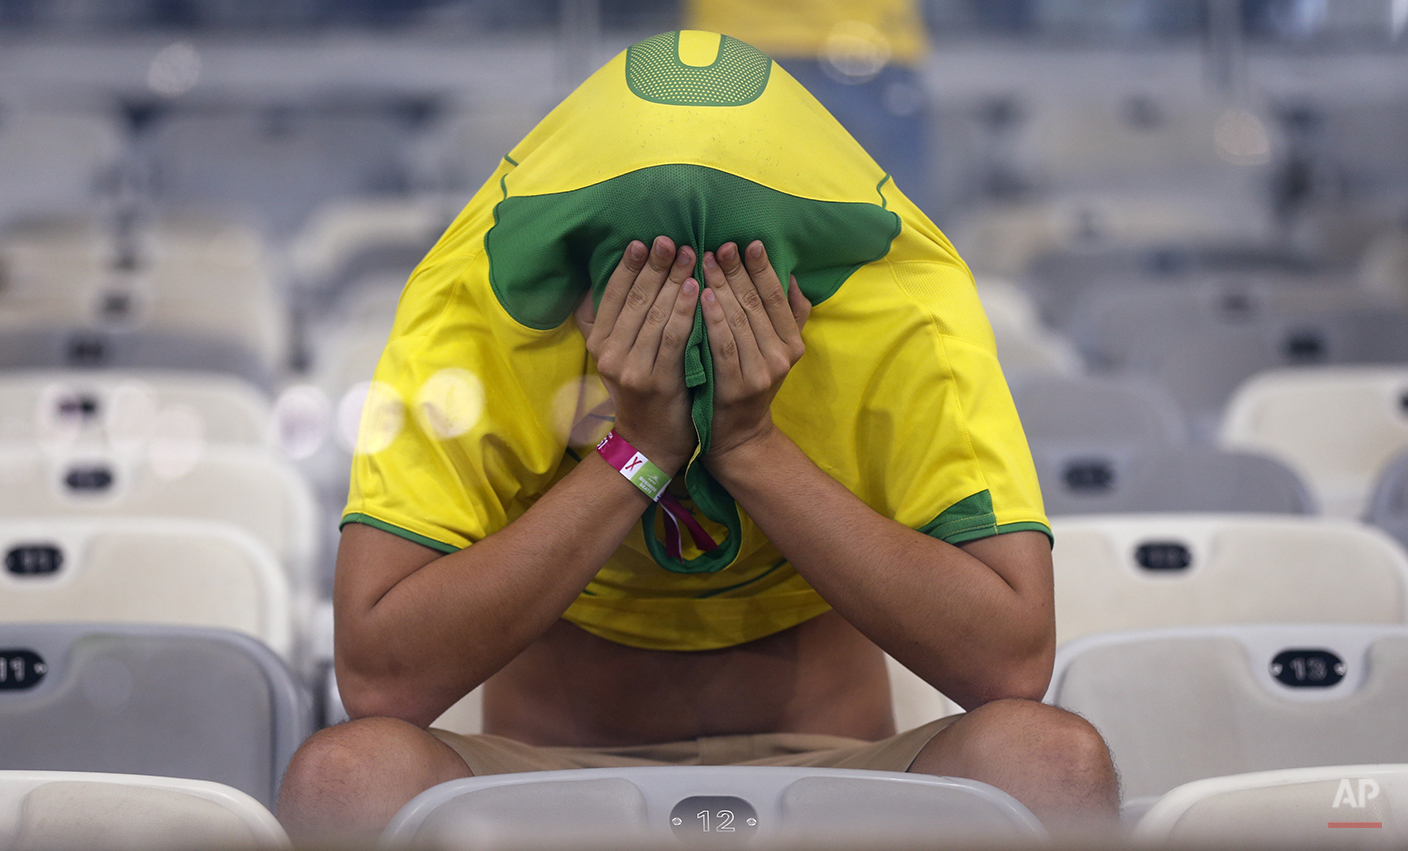 A Brazil fan covers his face after the World Cup semifinal soccer match between Brazil and Germany at the Mineirao Stadium in Belo Horizonte, Brazil, Tuesday, July 8, 2014. Germany beat Brazil 7-1 and advanced to the final.  (AP Photo/Frank Augstein)